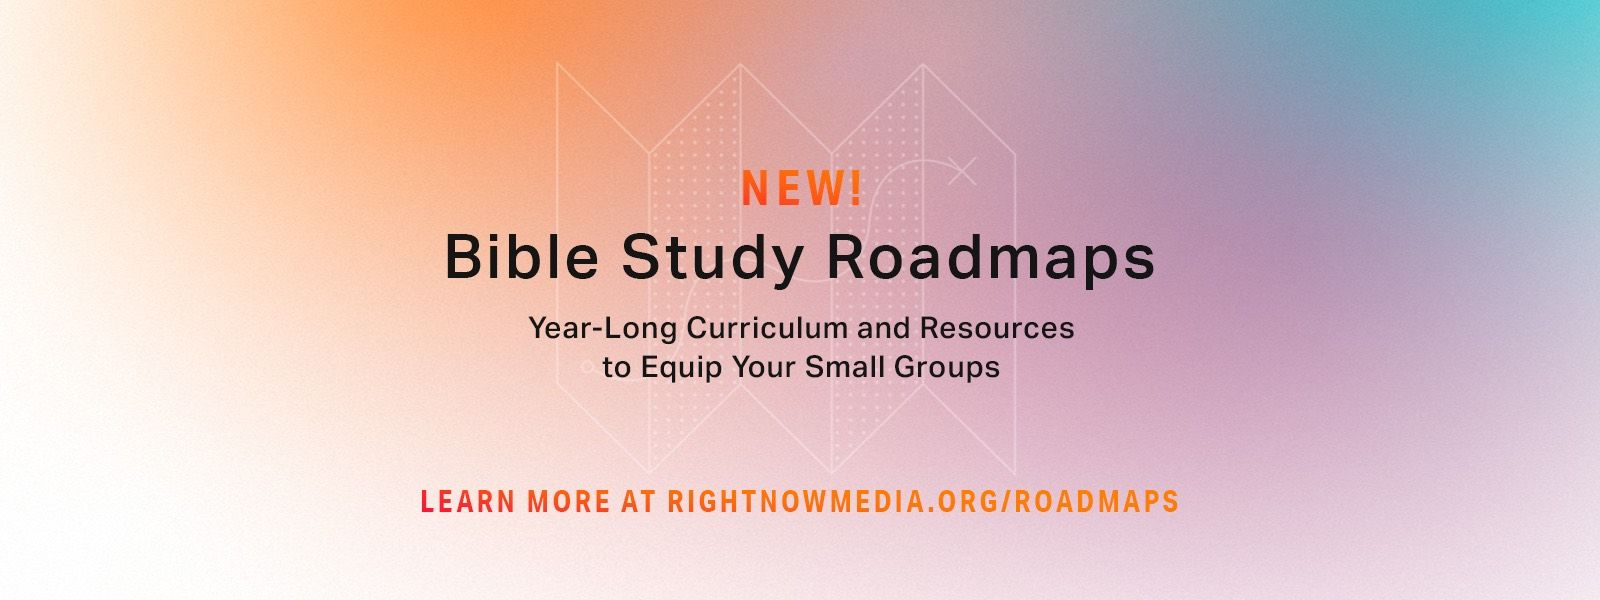 Bible Study Roadmaps